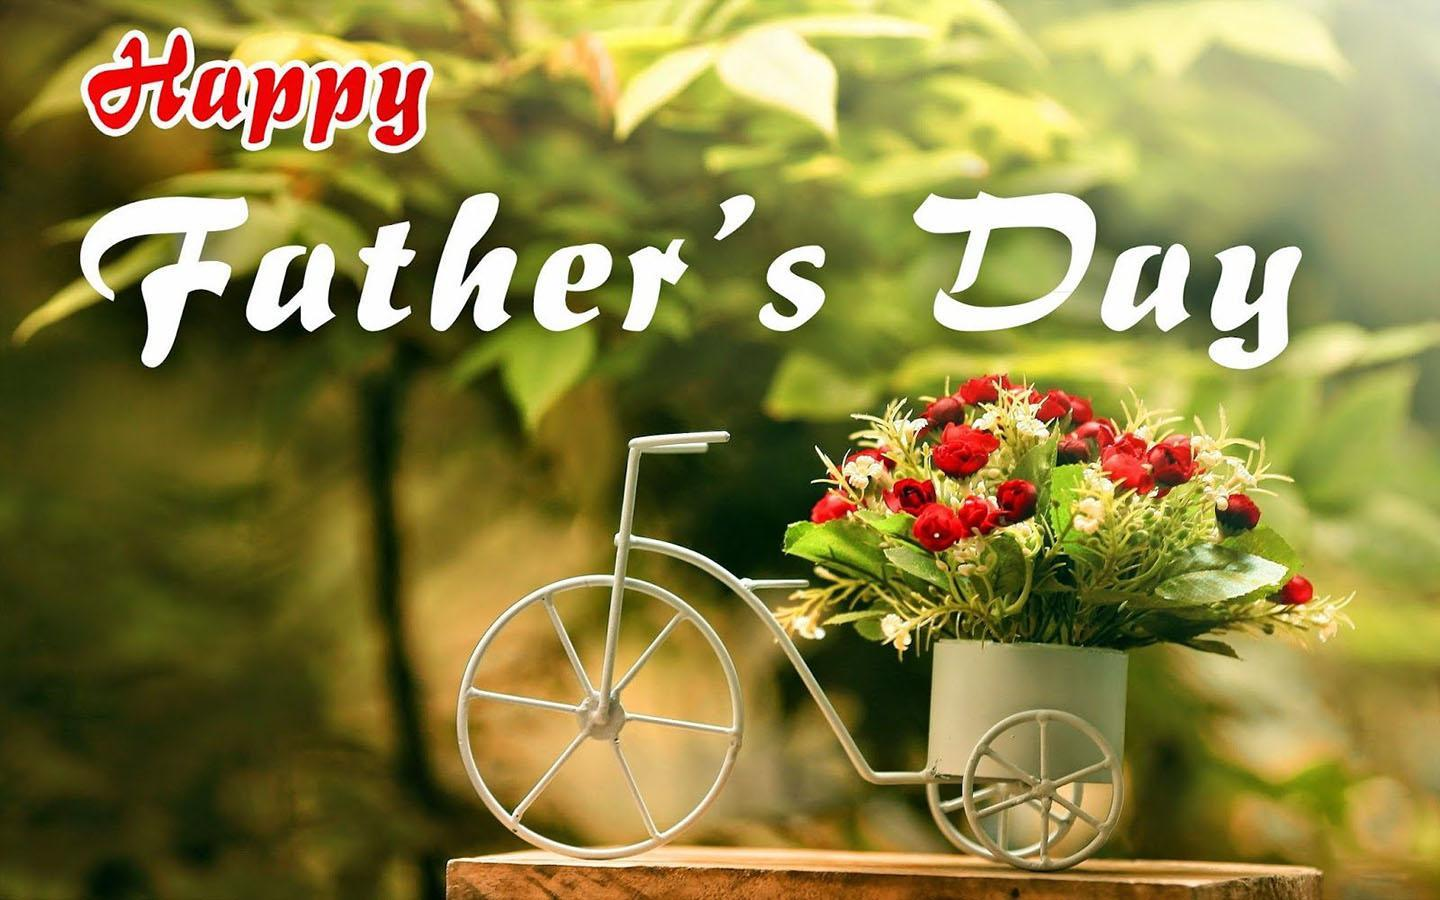 Fathers Day Wallpapers for Android   APK Download 1440x900